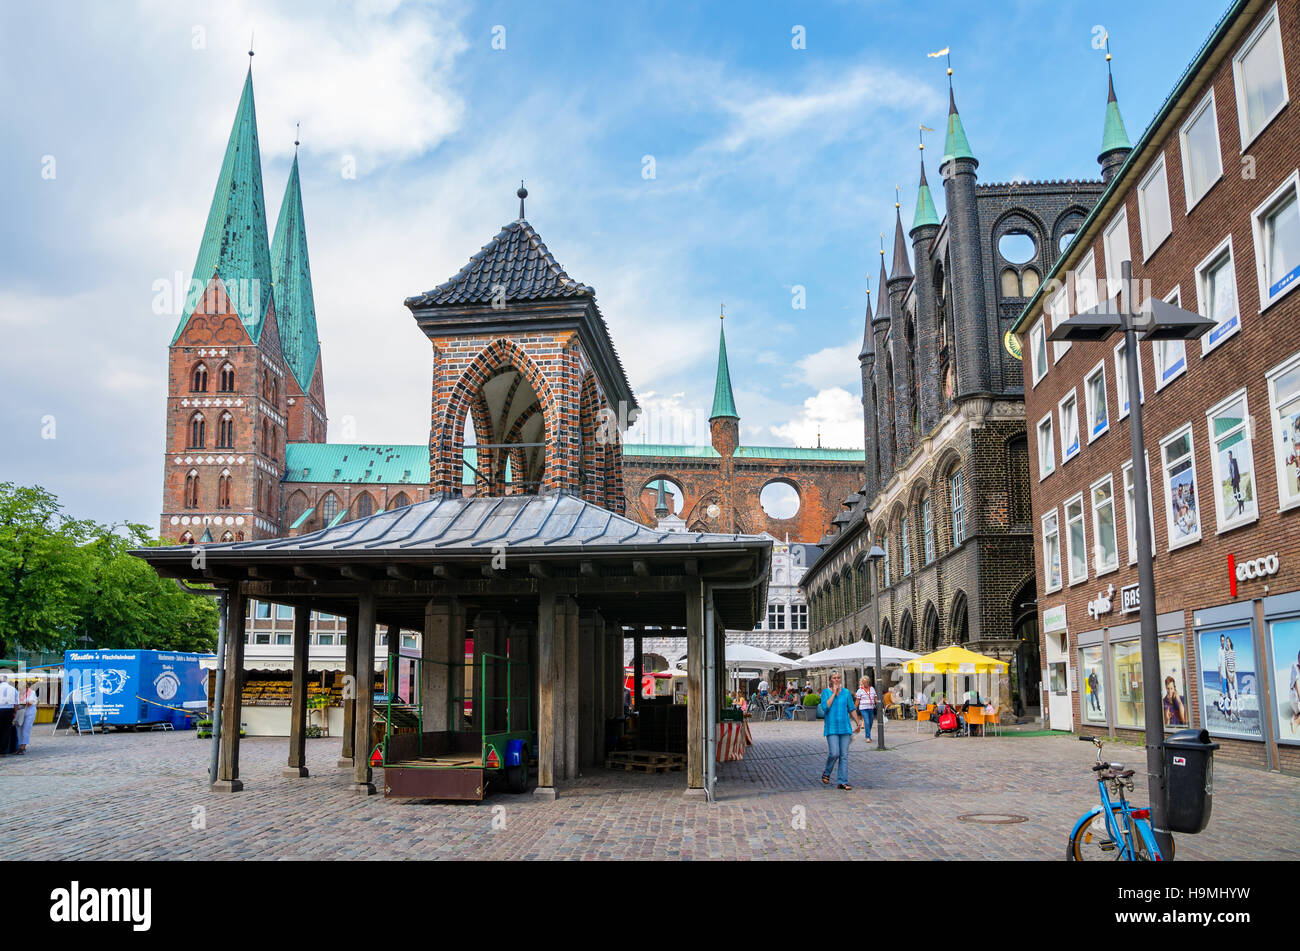 Market square in Lubeck. Schleswig-Holstein, Germany - Stock Image